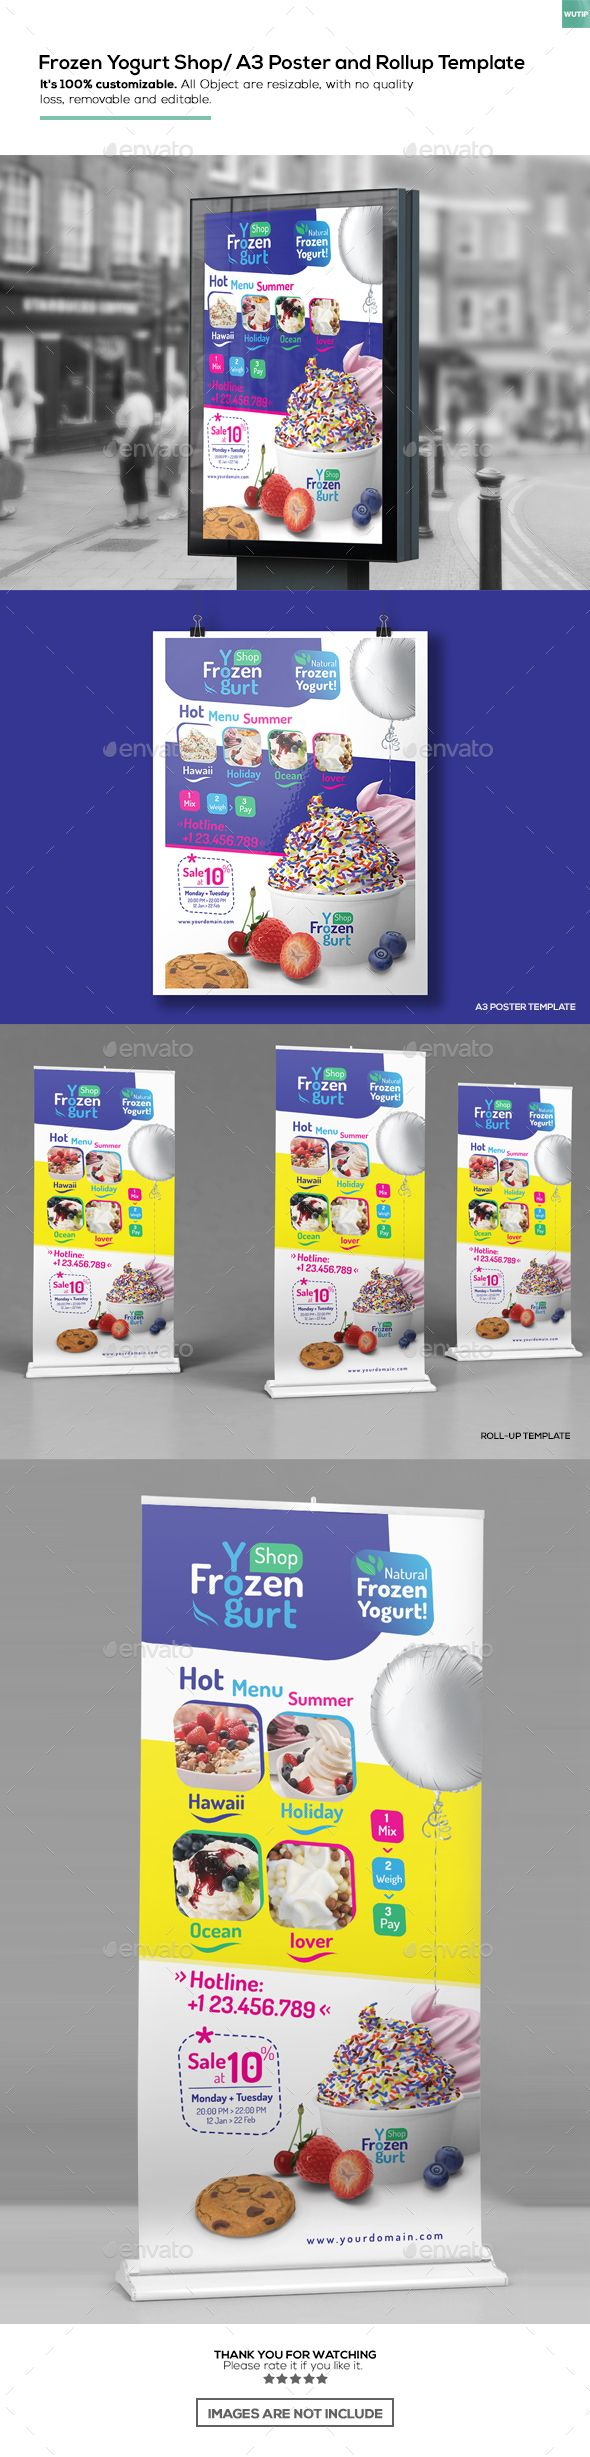 Frozen Yogurt Shop/ A3 Poster and Rollup Template PSD. Download here: graphicriv...